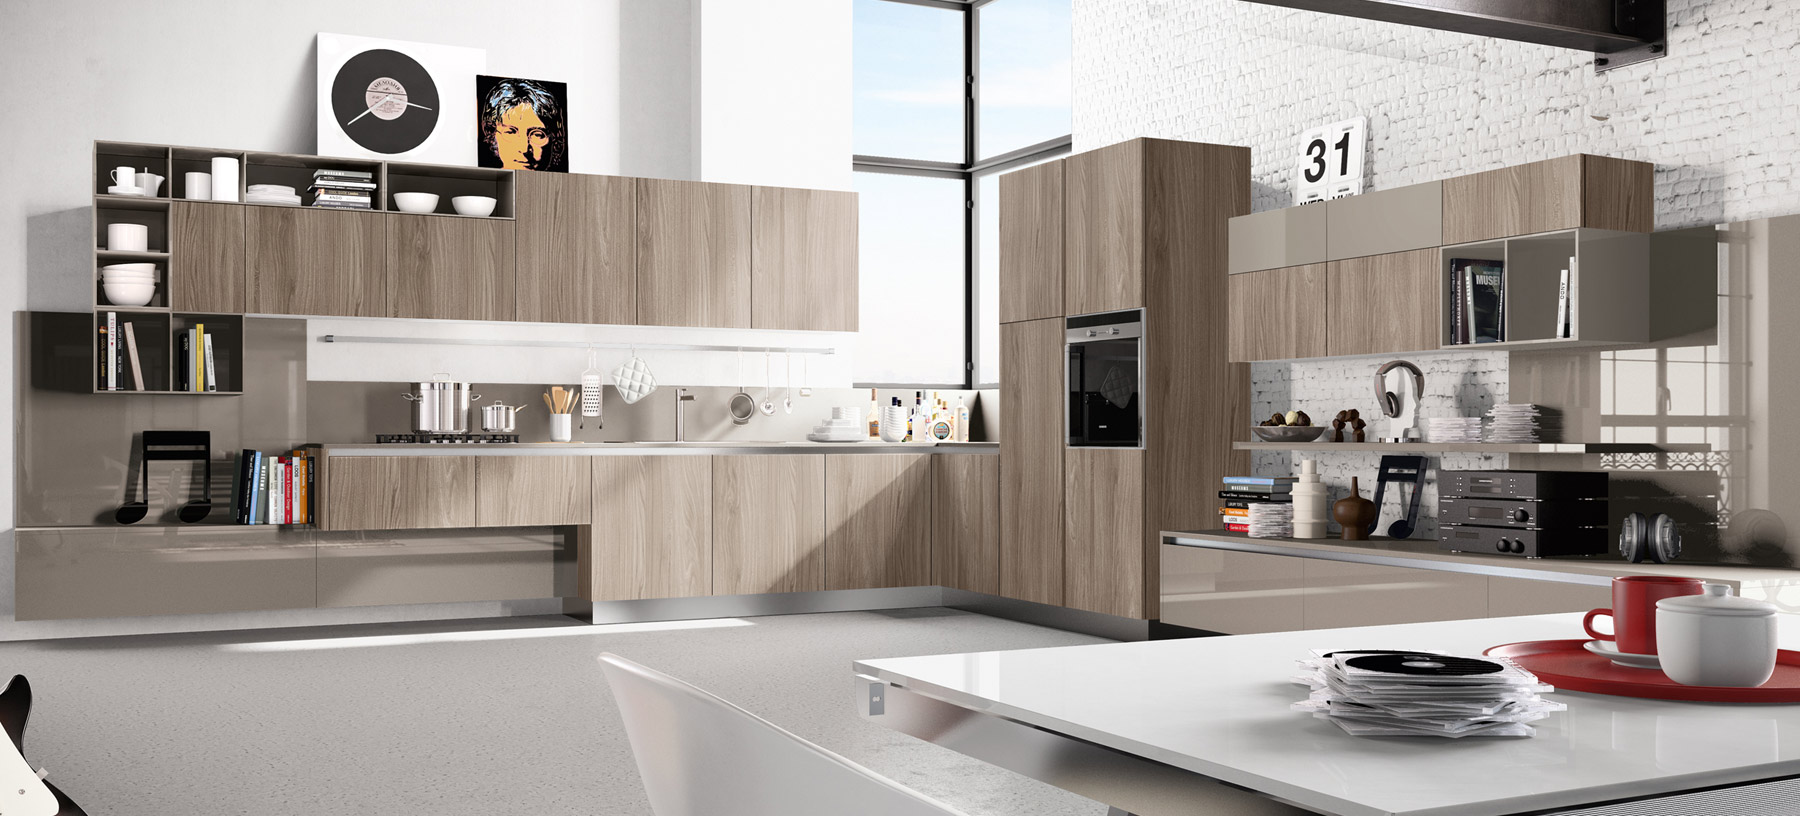 Kitchen designs that pop - Images of modern kitchen designs ...